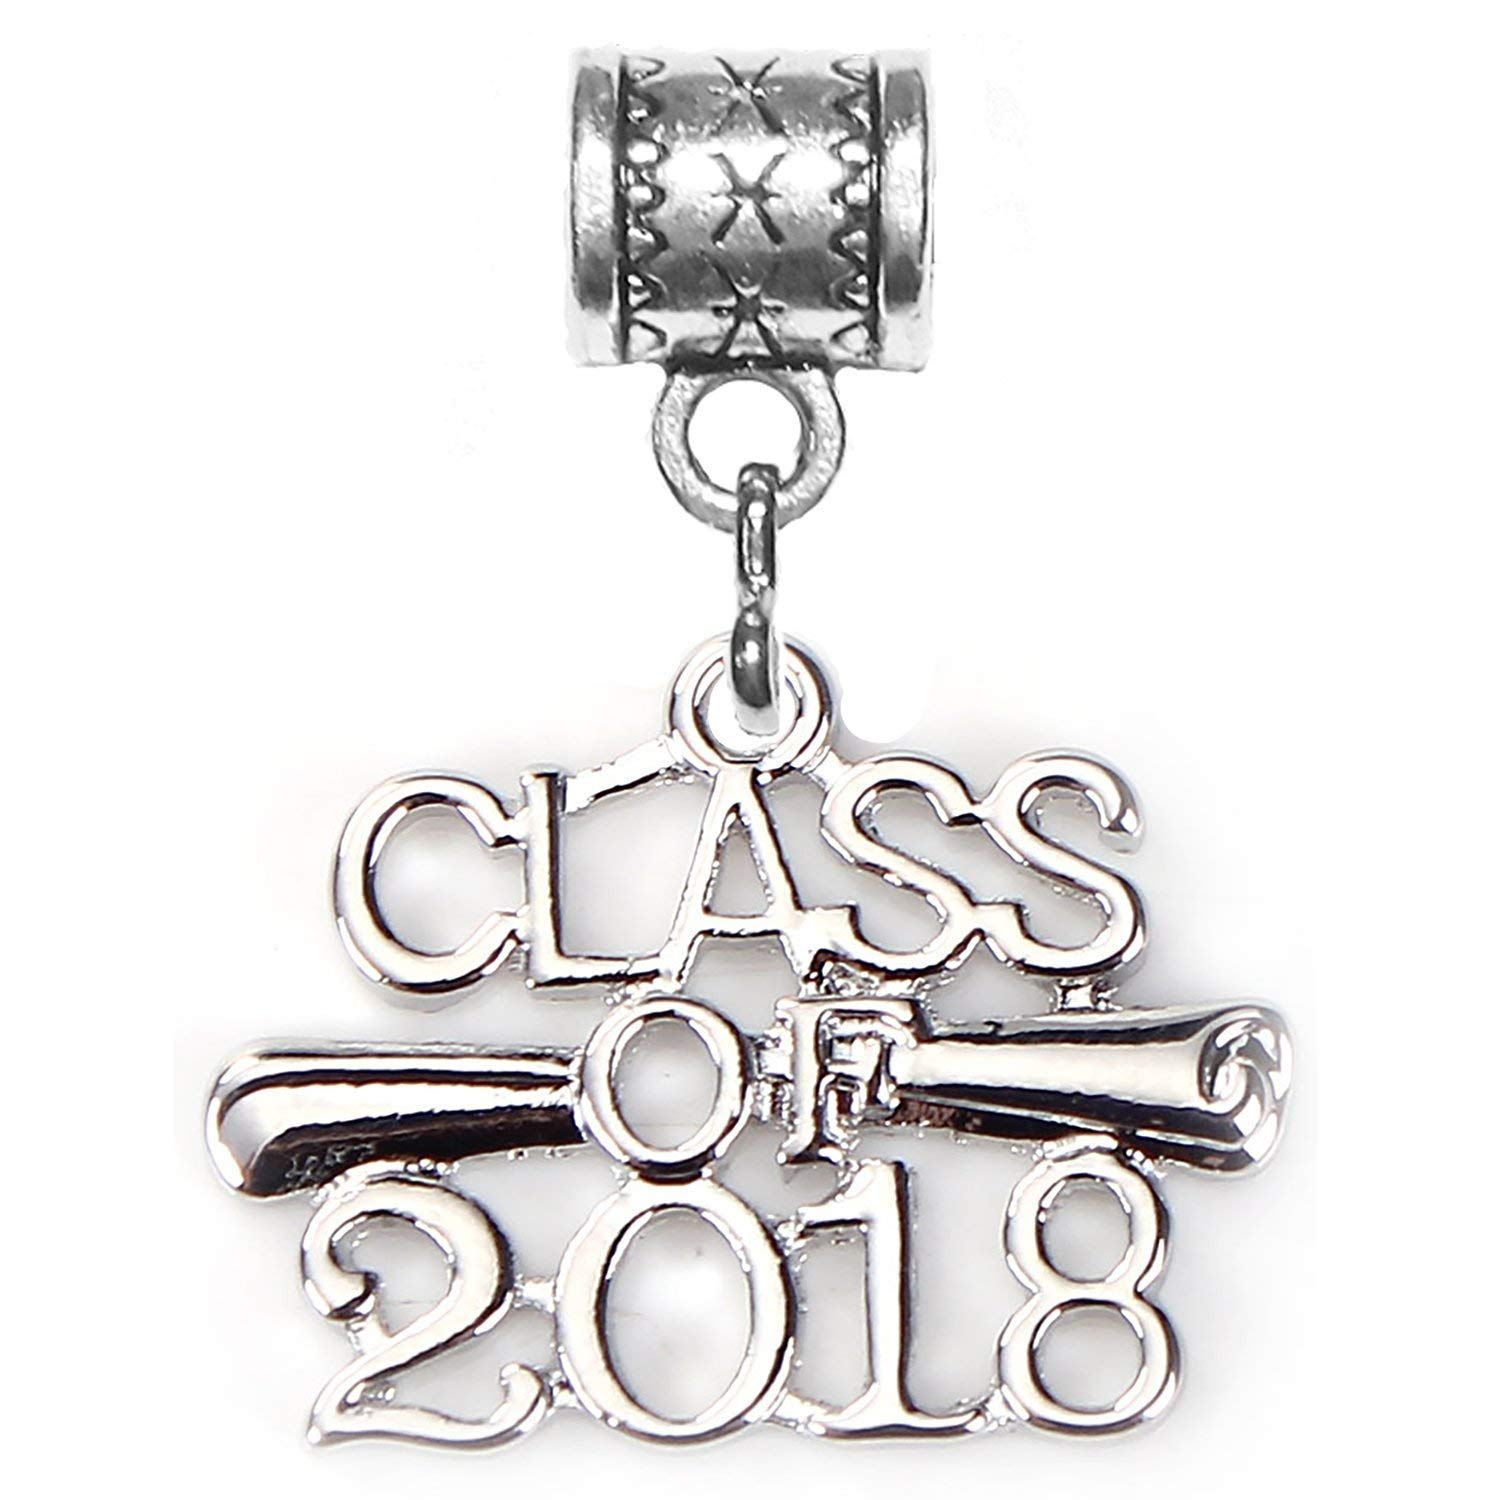 """Class of 2018 charm"" antique silver charm by Mossy Cabin for modern large hole snake chain charm bracelet, or add to a neck chain, pendant necklace or key chain."